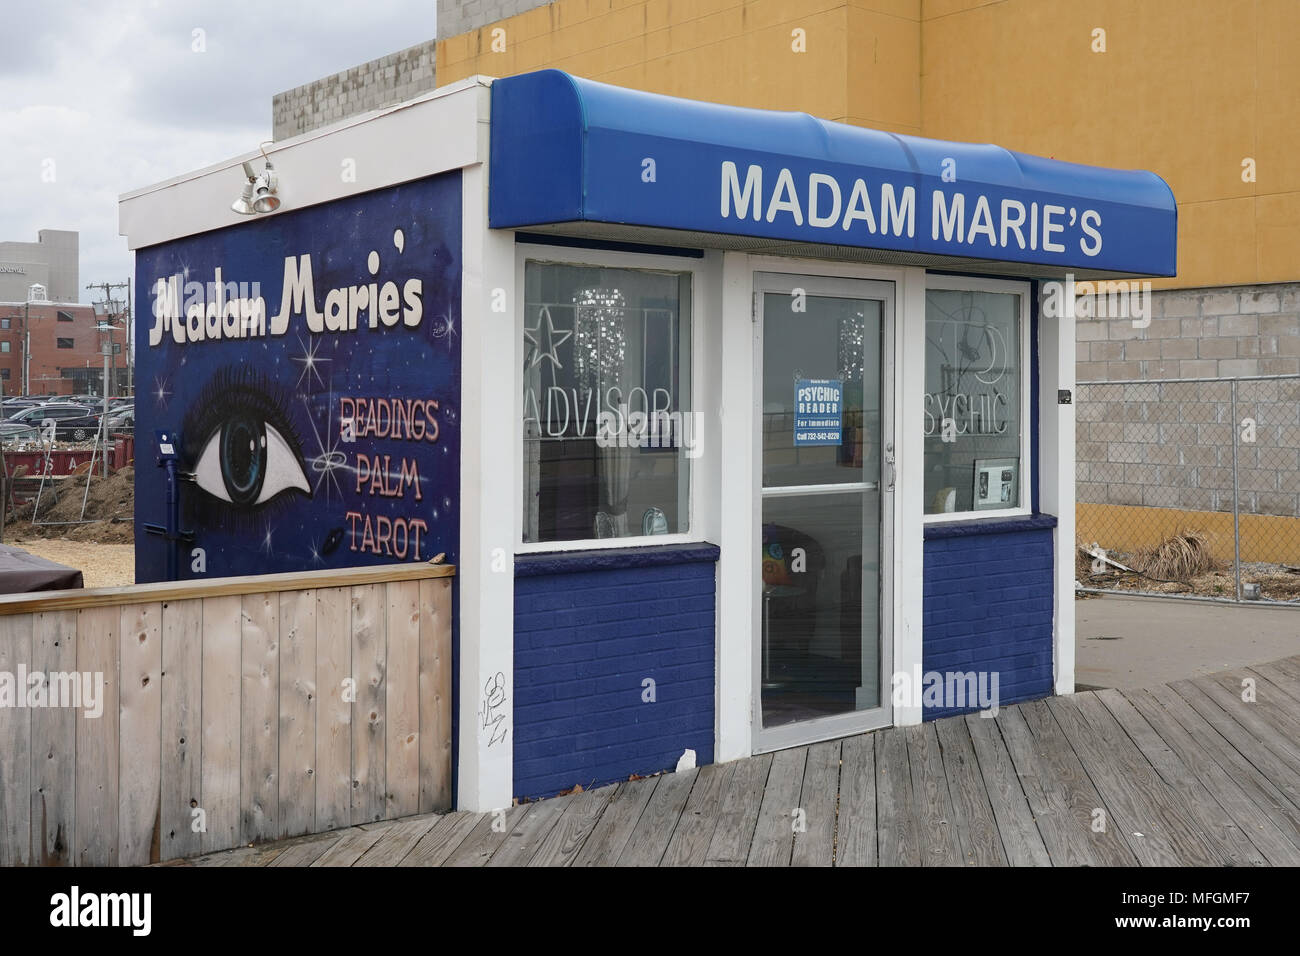 Madam Marie's astrology parlour in Asbury Park, New Jersey, in the